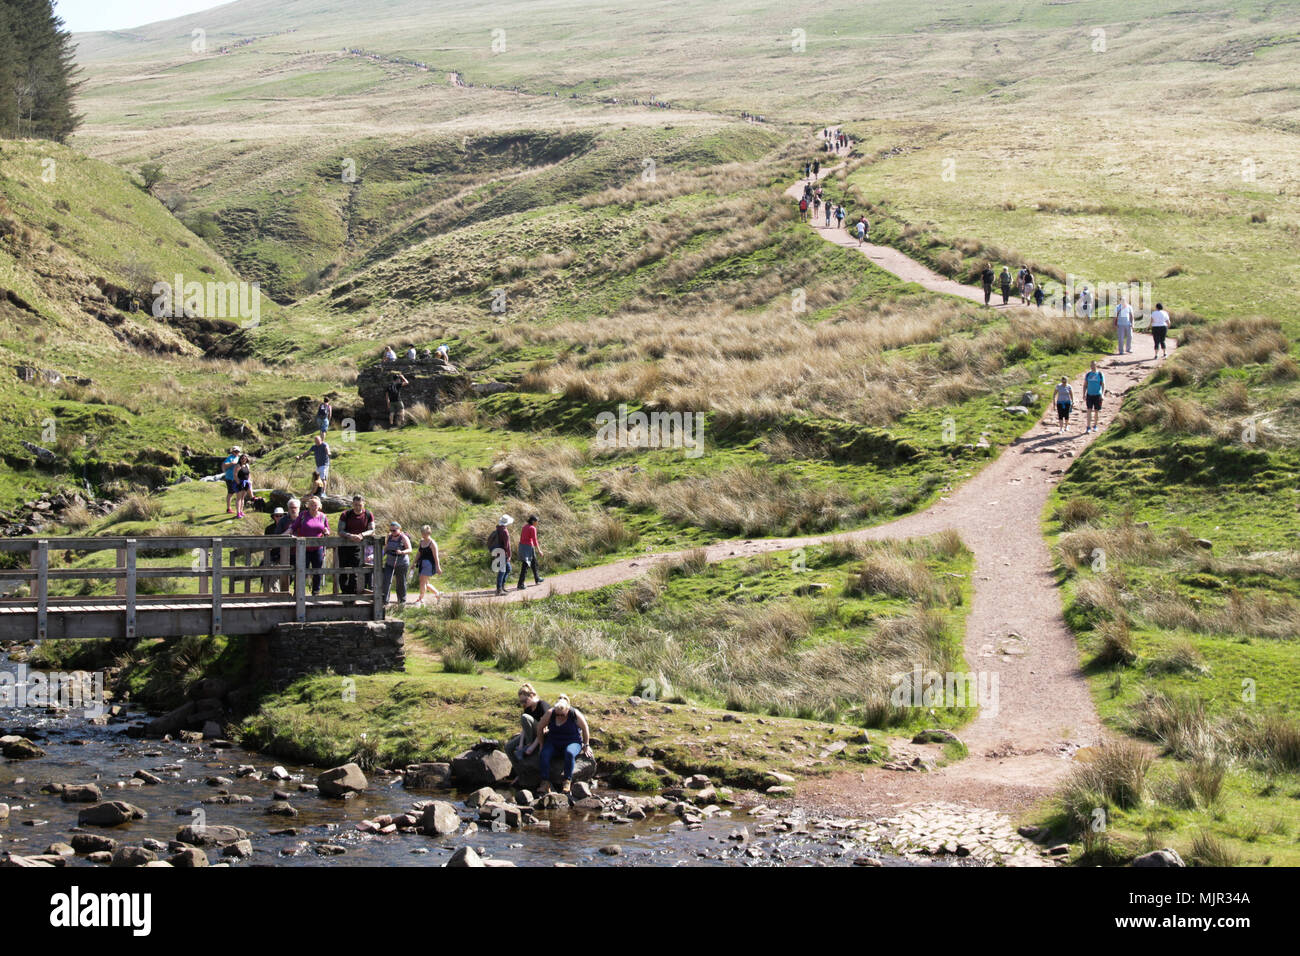 Brecon Beacons, South Wales, UK.  6 May 2018.  UK weather: With another hot and sunny start to the day, hundreds of people flock to the Brecon Beacons this morning to enjoy the walk to Pen-Y-Fan.  Credit: Andrew Bartlett/Alamy Live News Stock Photo